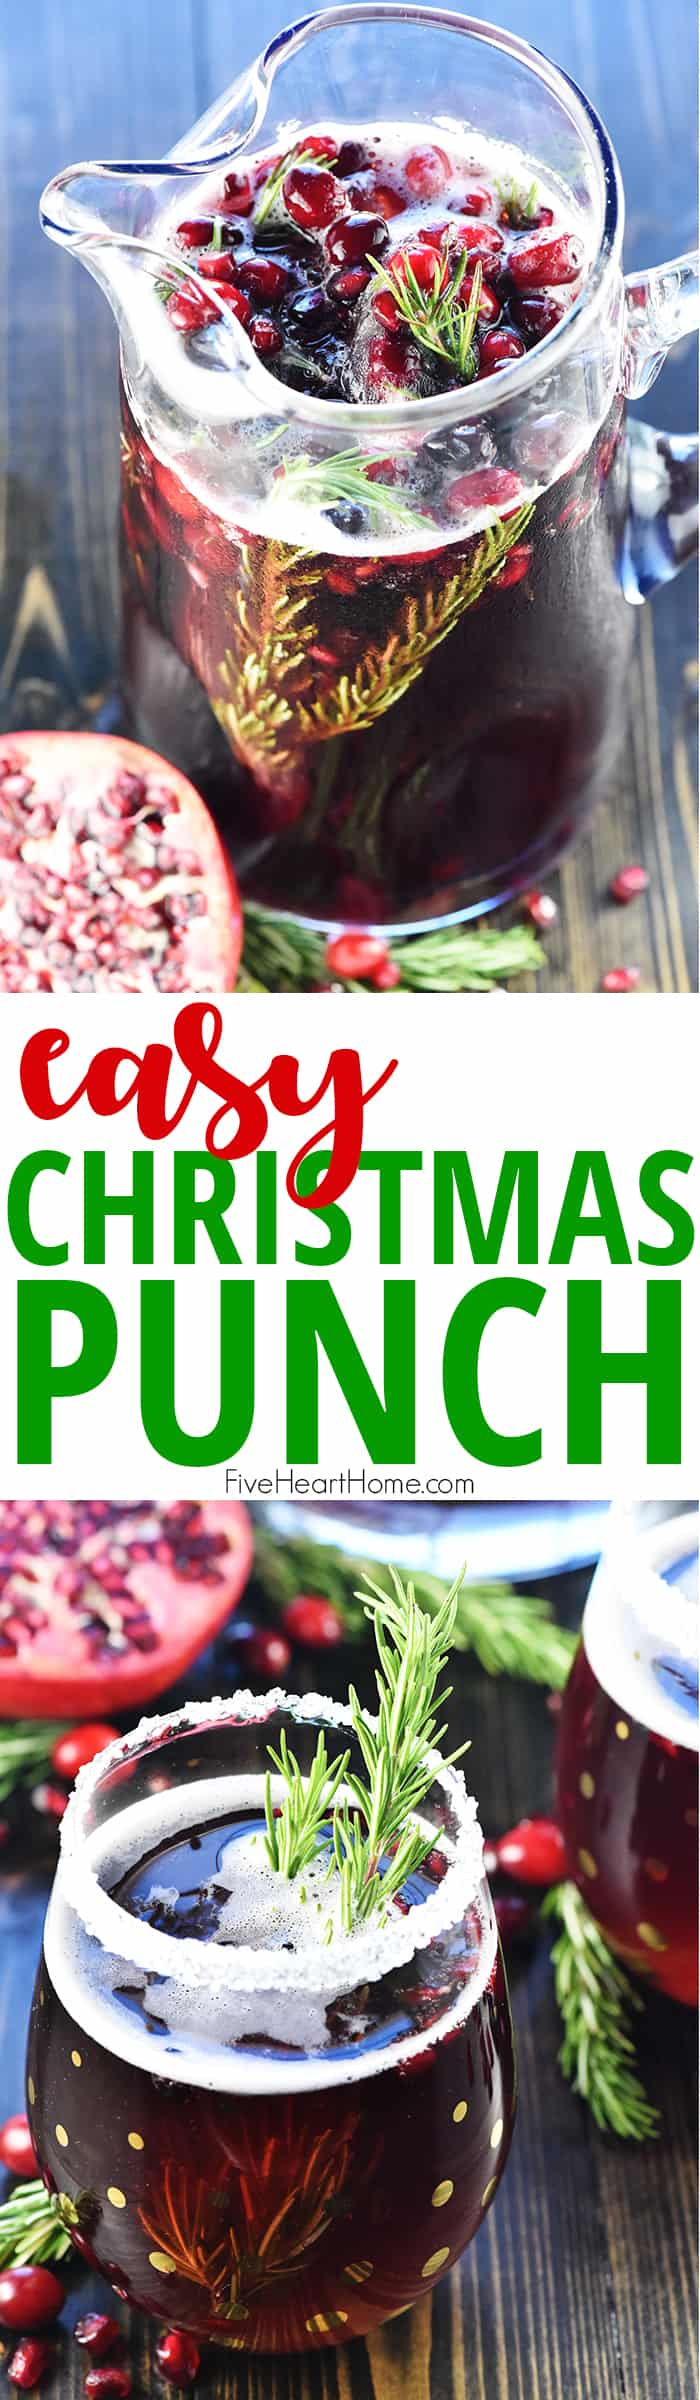 Easy Christmas Punch ~ a festive, sparkling, boozy holiday beverage featuring champagne, pomegranate juice, and cranberry juice that's perfect for Christmas or New Year's Eve parties...and it's easy to make a non-alcoholic version as well! | FiveHeartHome.com via @fivehearthome